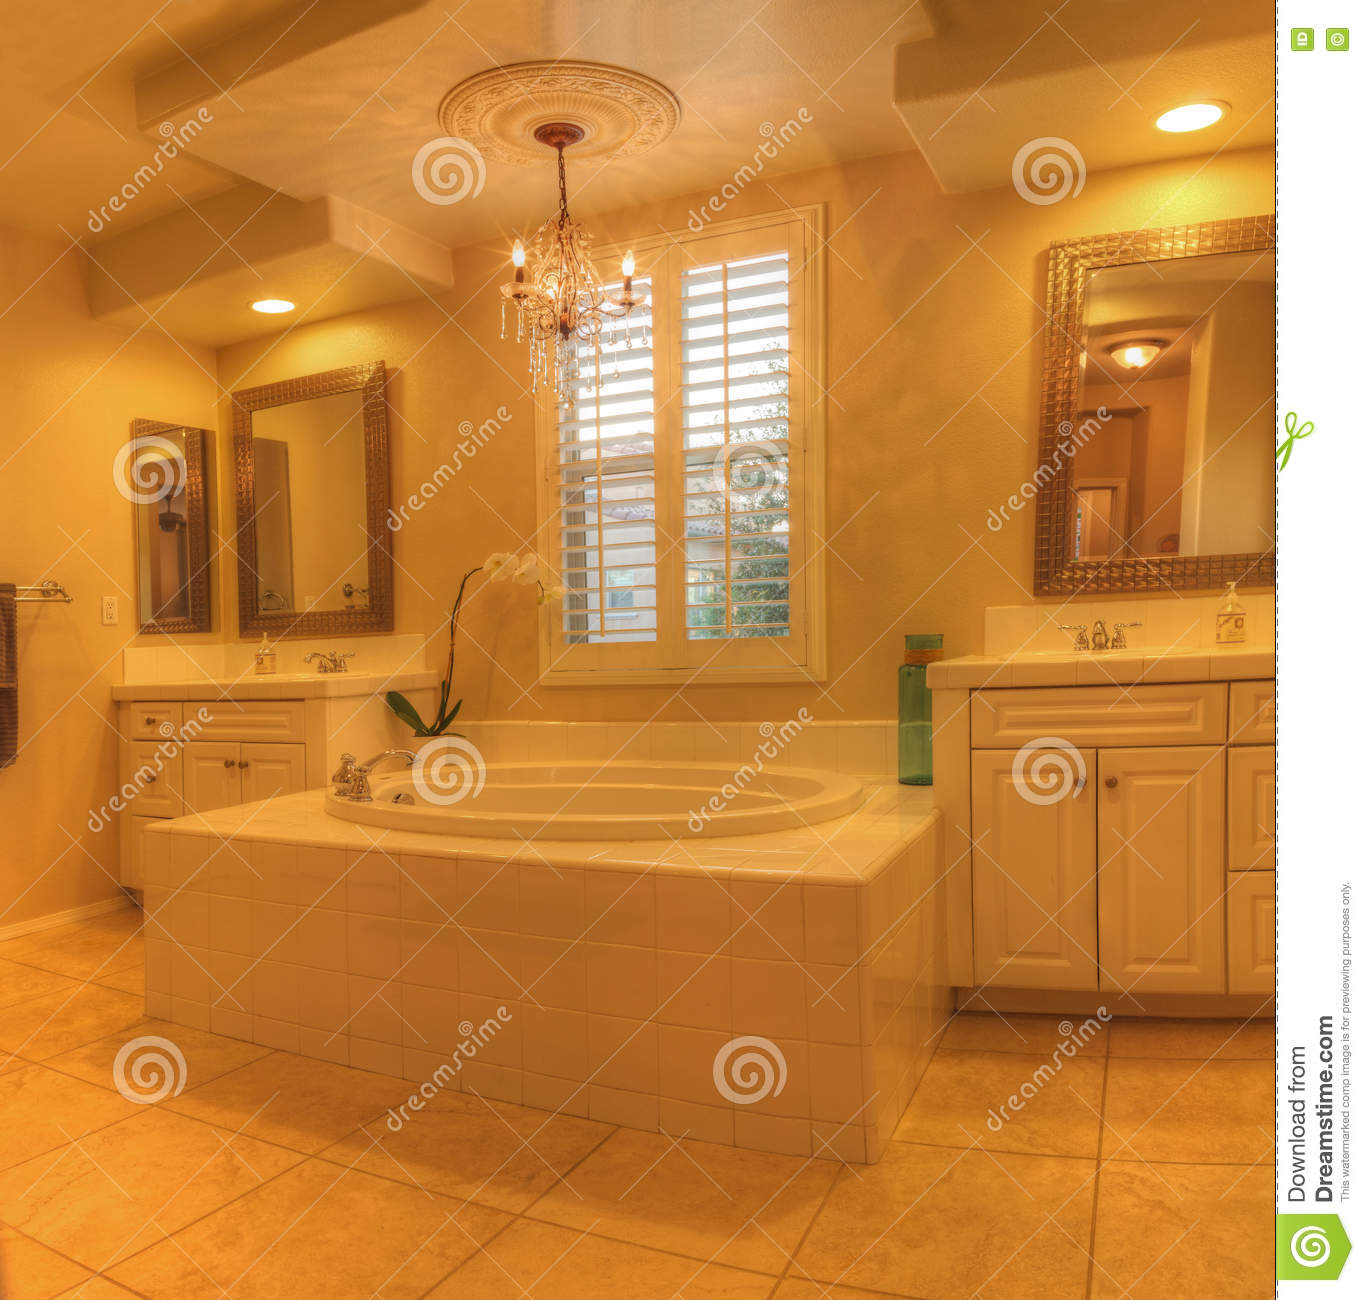 Oval hot tub spa bathtub in a marble bathroom stock image image of